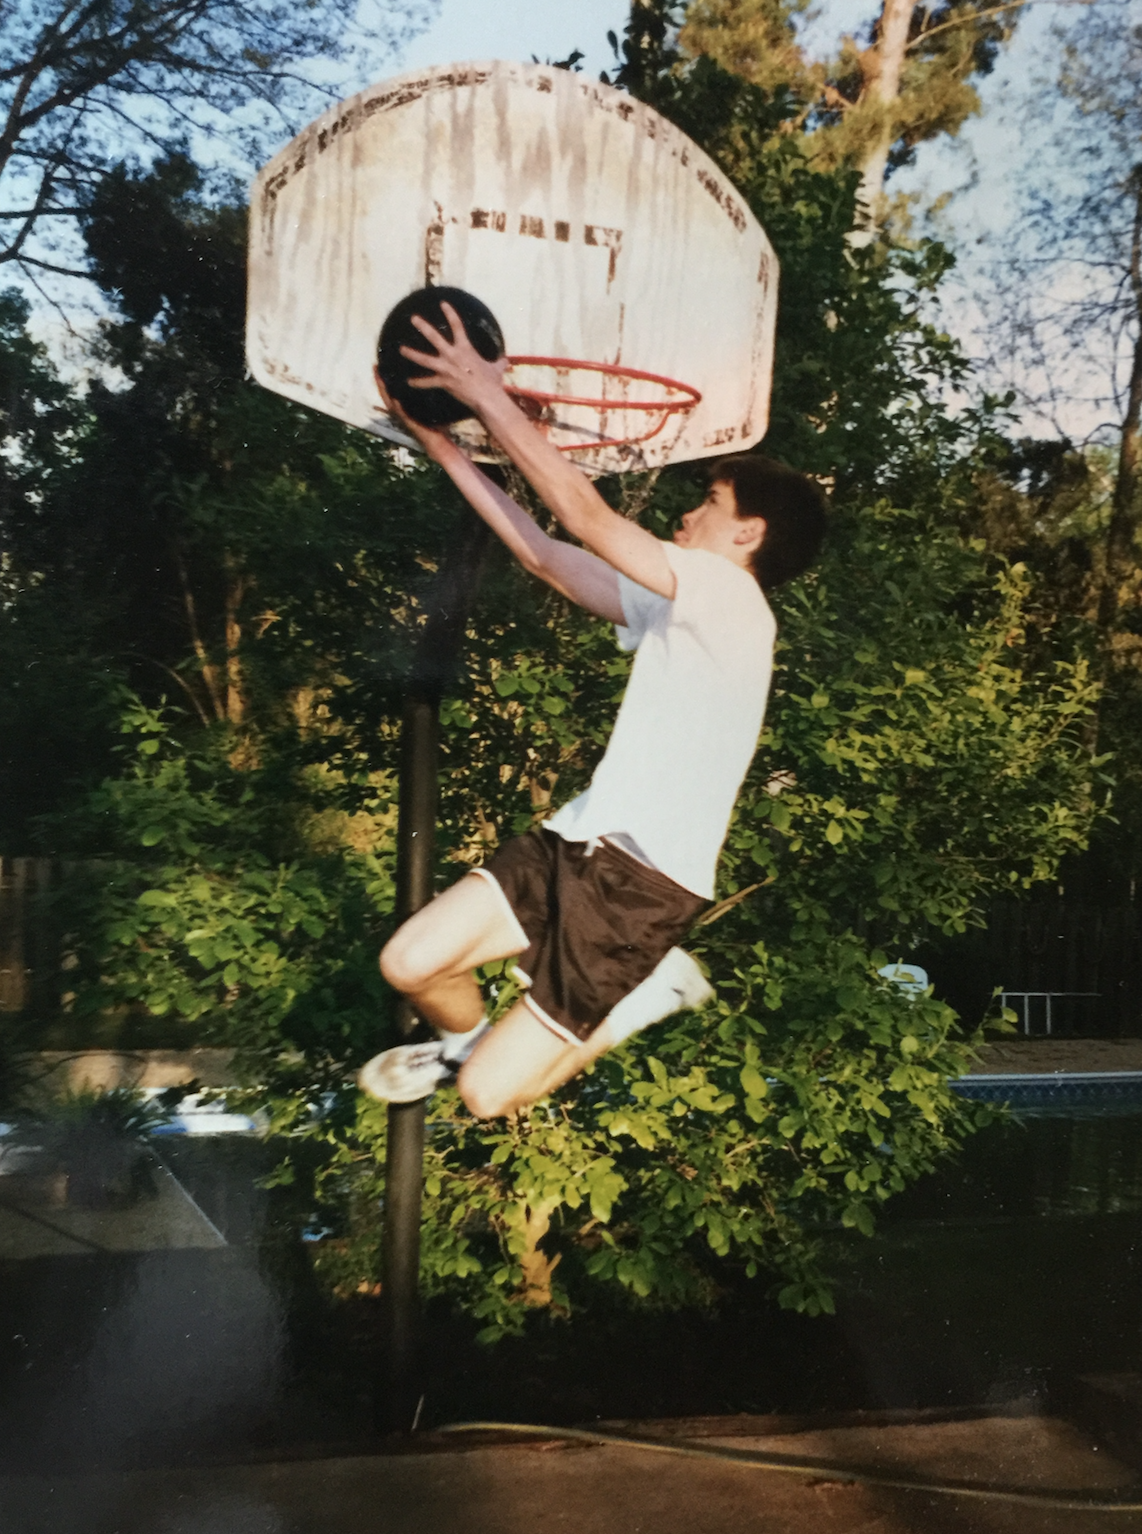 I was great at dunking in high school...on an 8-foot goal. #smh 😞